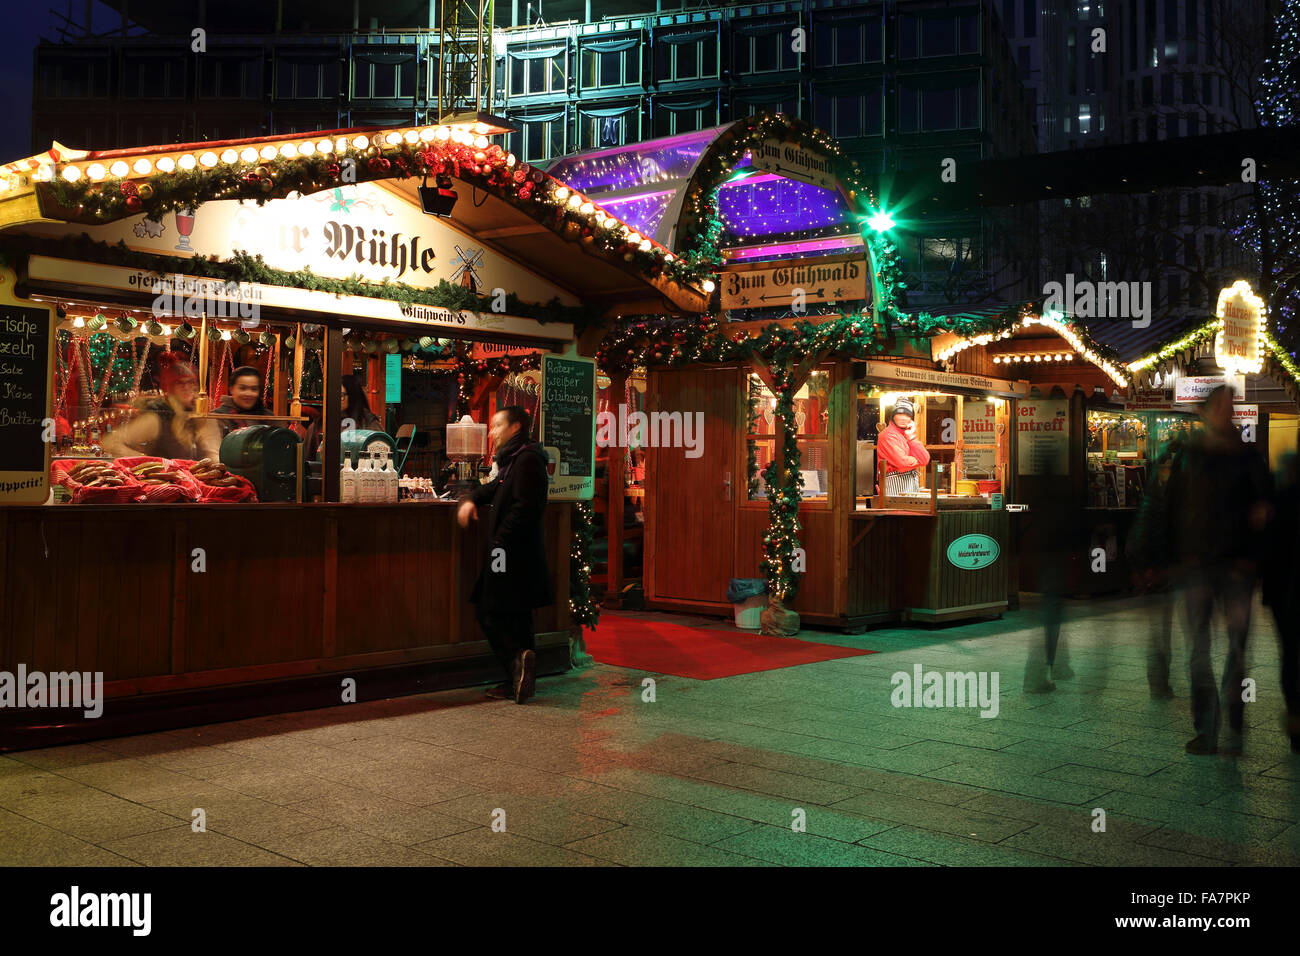 Food and drink stalls at the City Weihnachtsmarkt am Gedachtniskirche Christmas market on Ku'damm in Berlin, - Stock Image